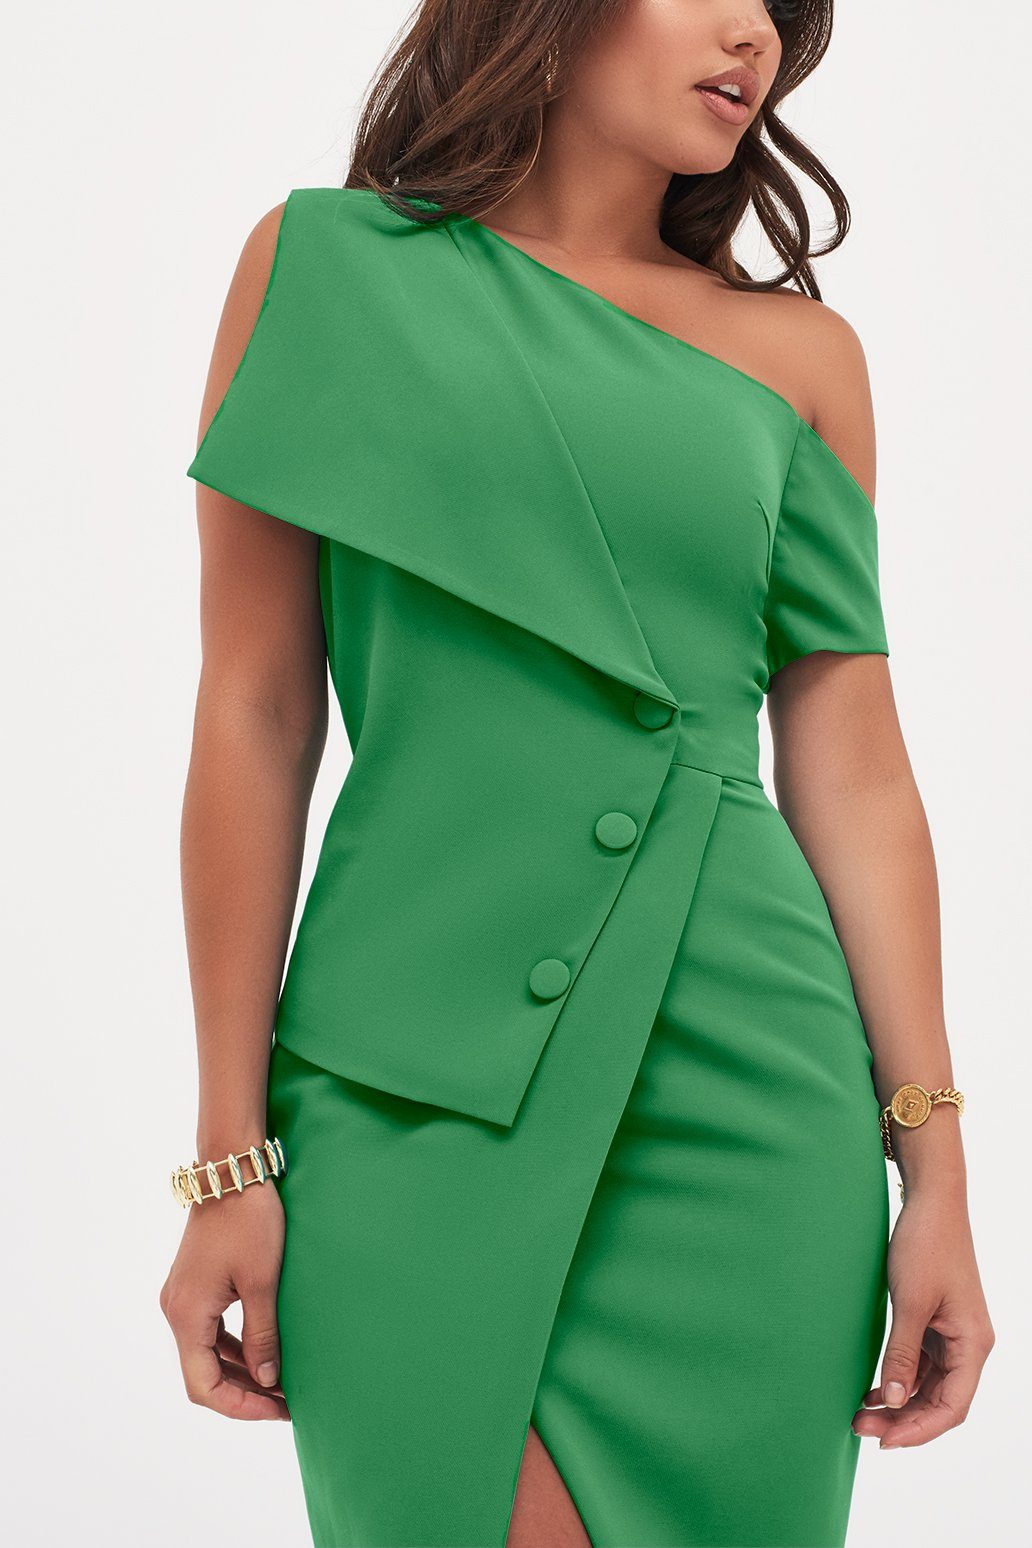 Button Detail Off The Shoulder Wrap Dress In Emerald Green